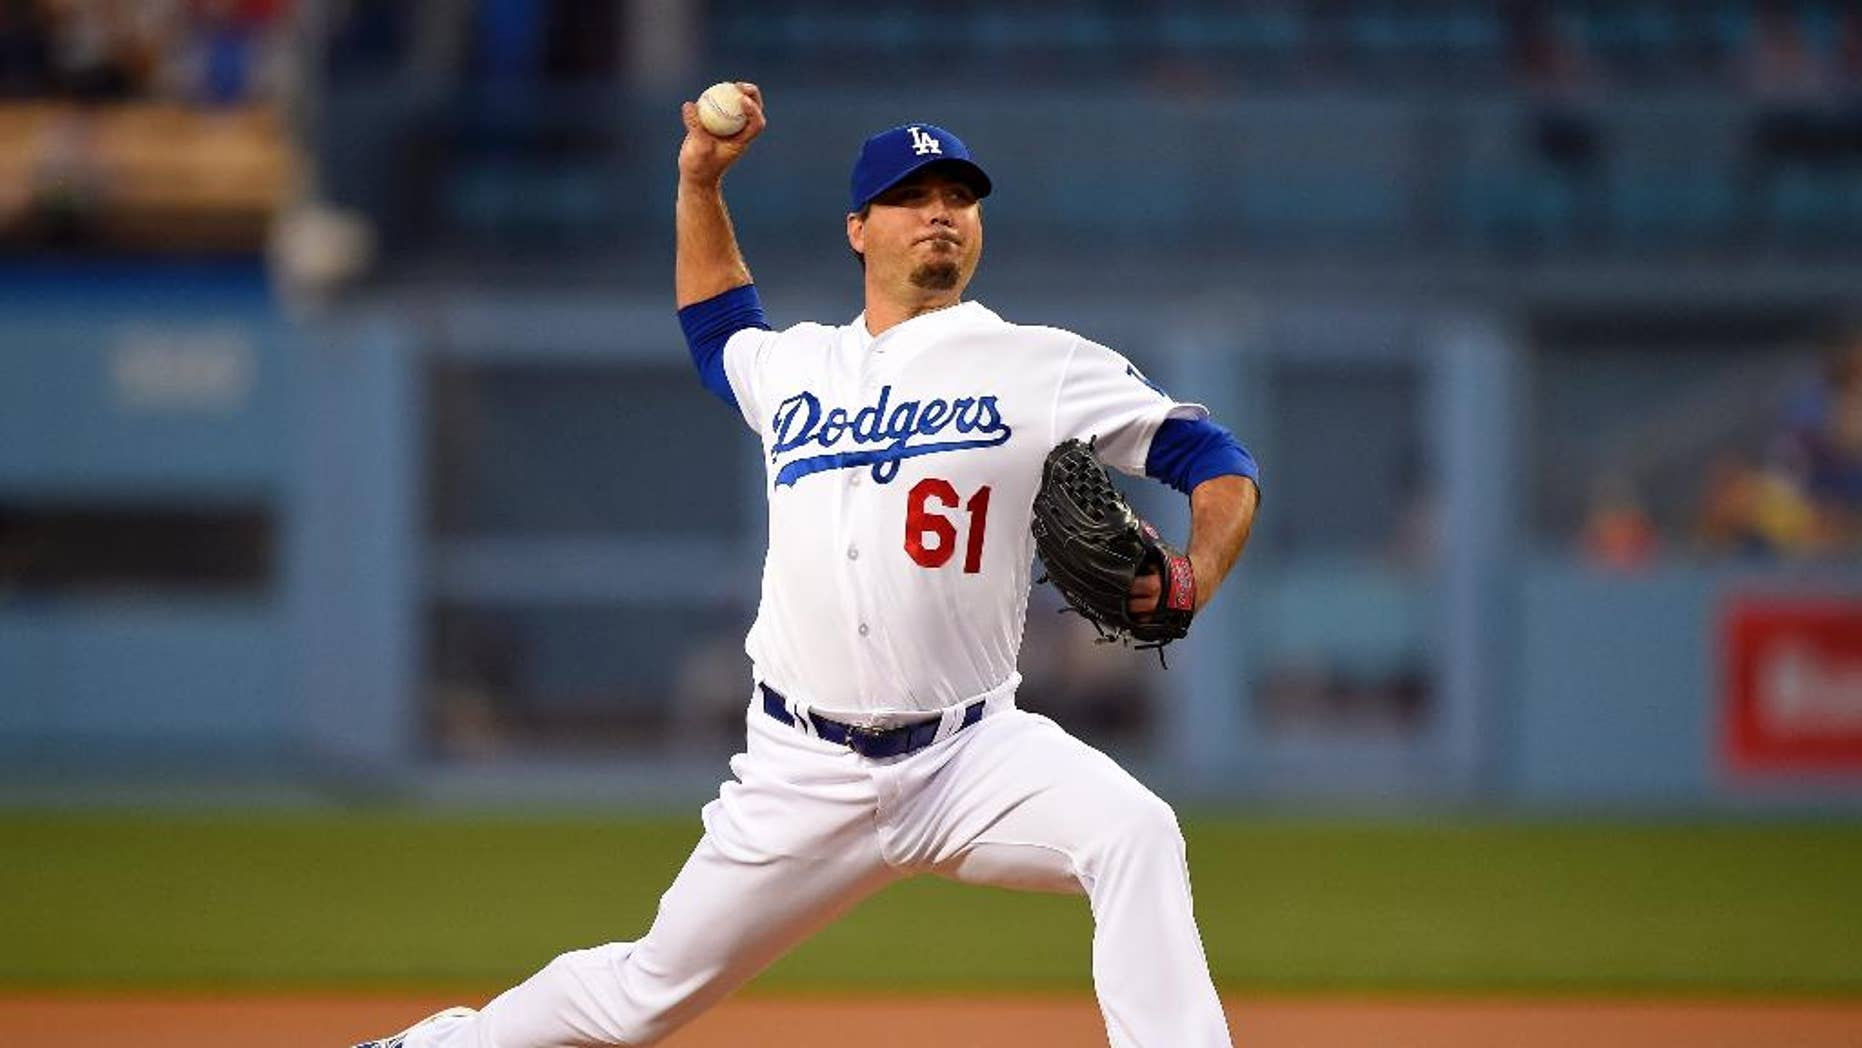 Los Angeles Dodgers starting pitcher Josh Beckett throws to the plate during the first inning of a baseball game against the Detroit Tigers, Wednesday, April 9, 2014, in Los Angeles. (AP Photo/Mark J. Terrill)